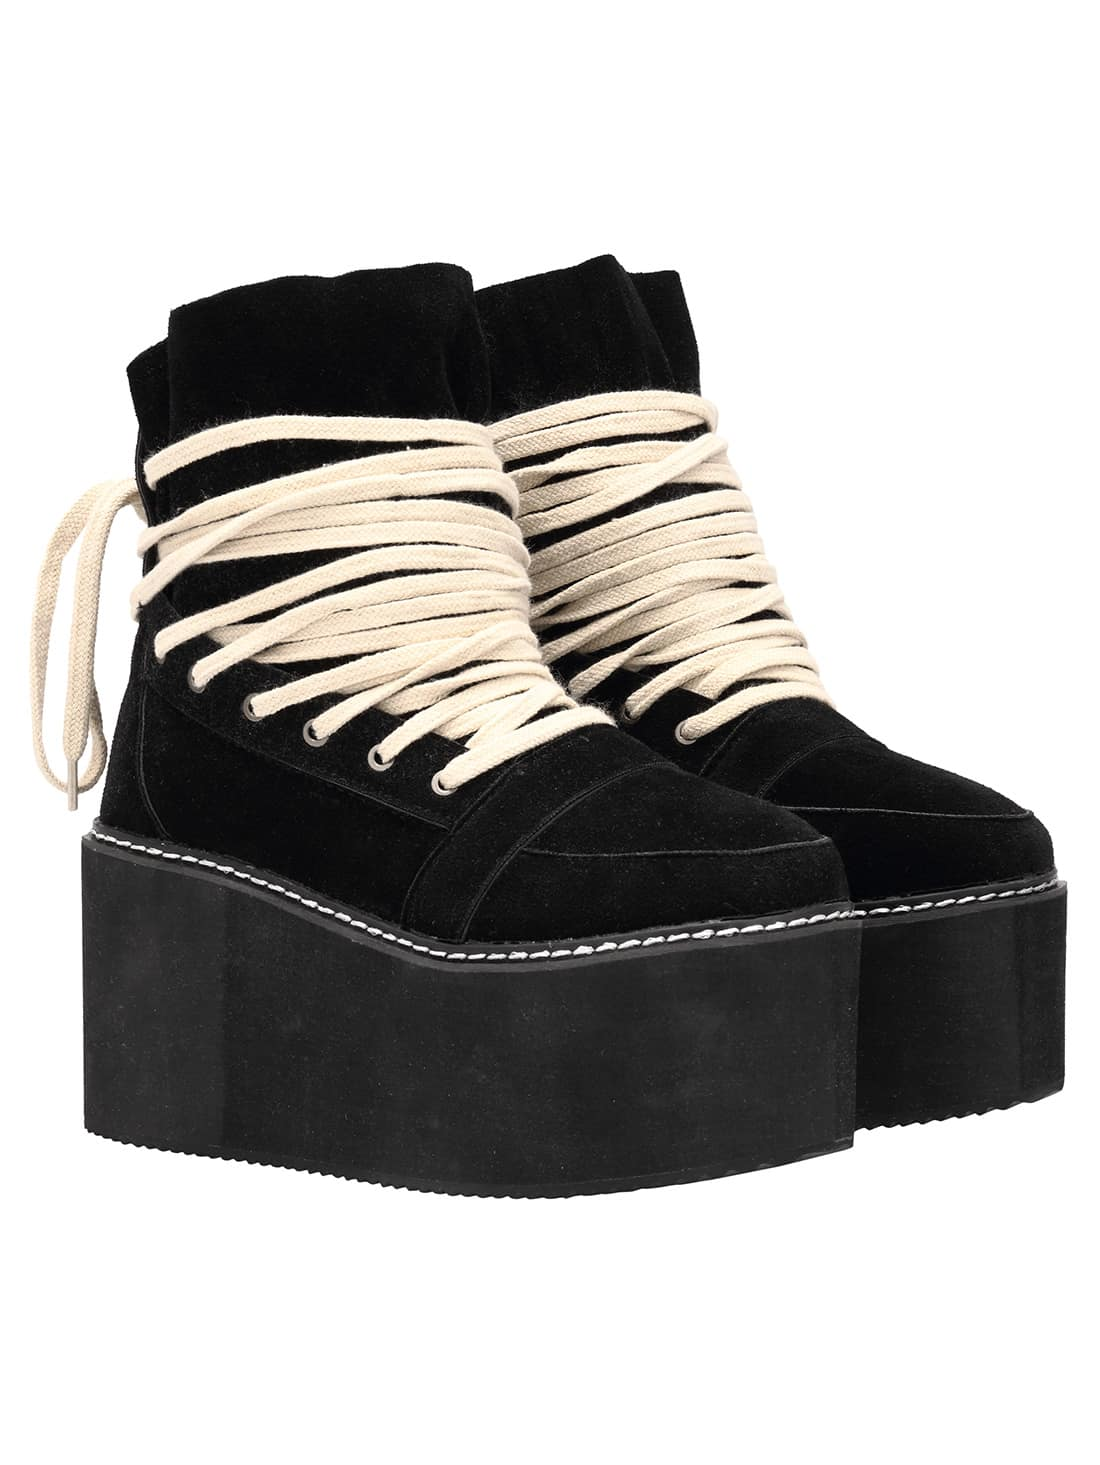 Black Lace Up Heavy-bottomed Boots